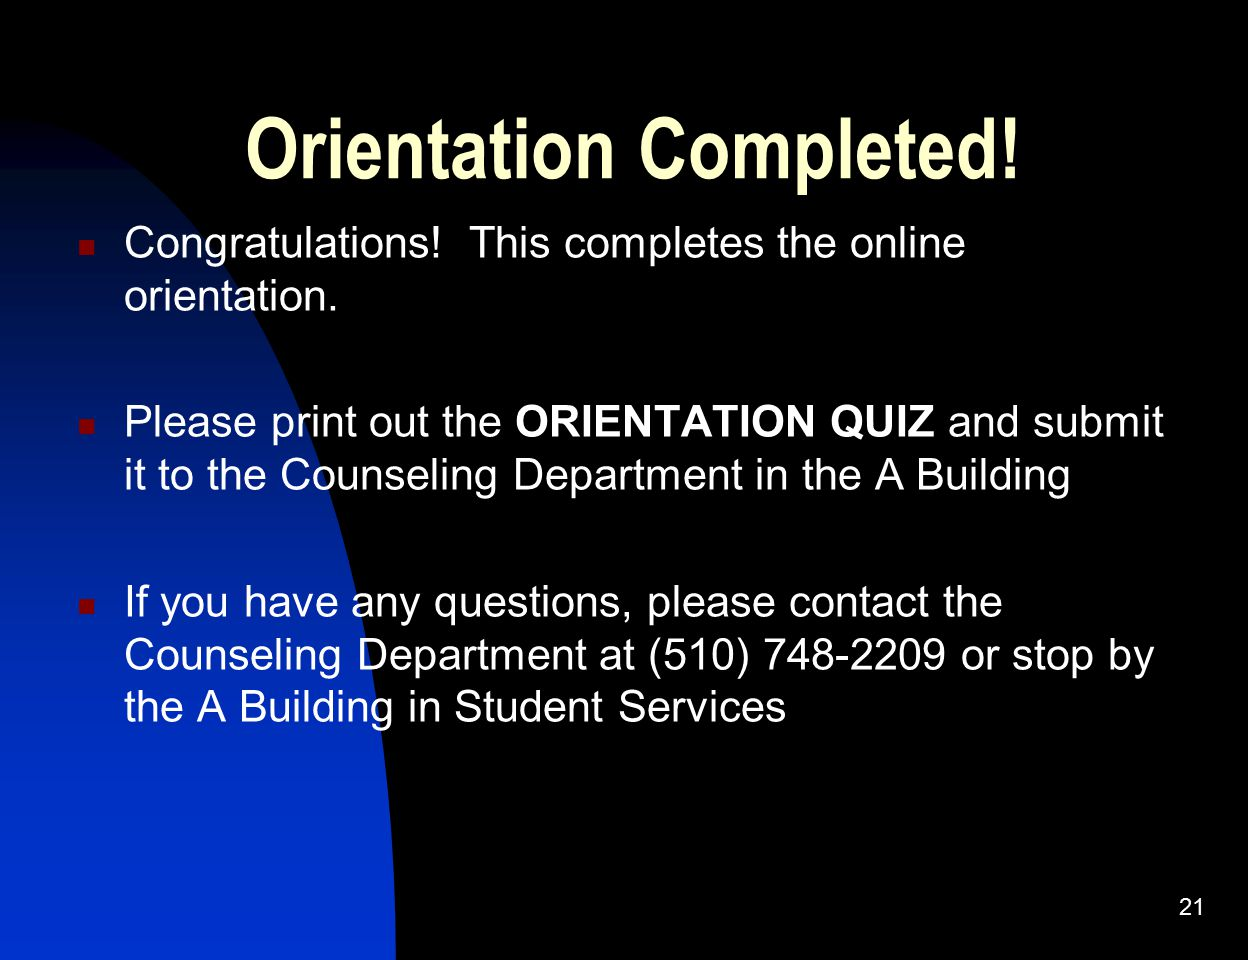 Orientation Completed!